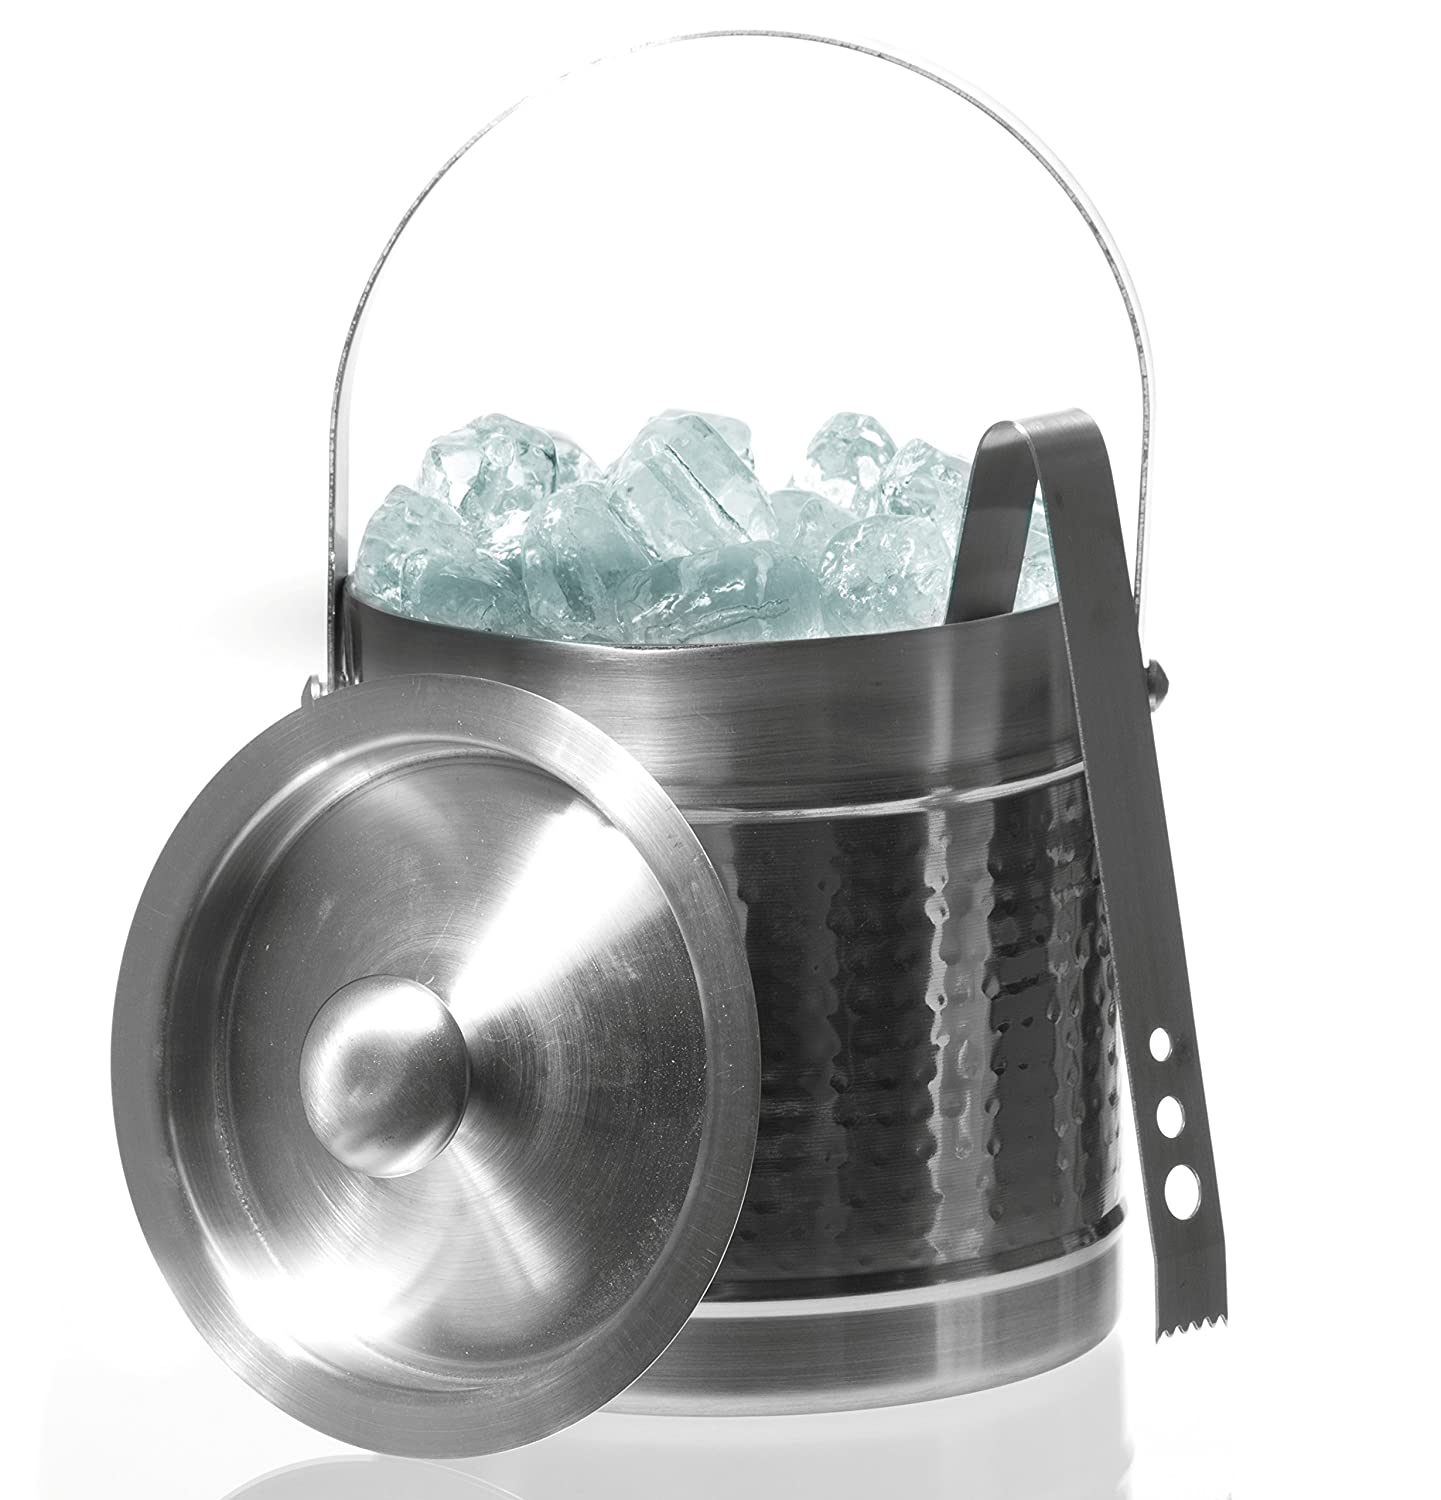 Stainless Steel Double Wall Ice Bucket With Tongs - Double Wall Ice Bucket Imperial Home MW1744